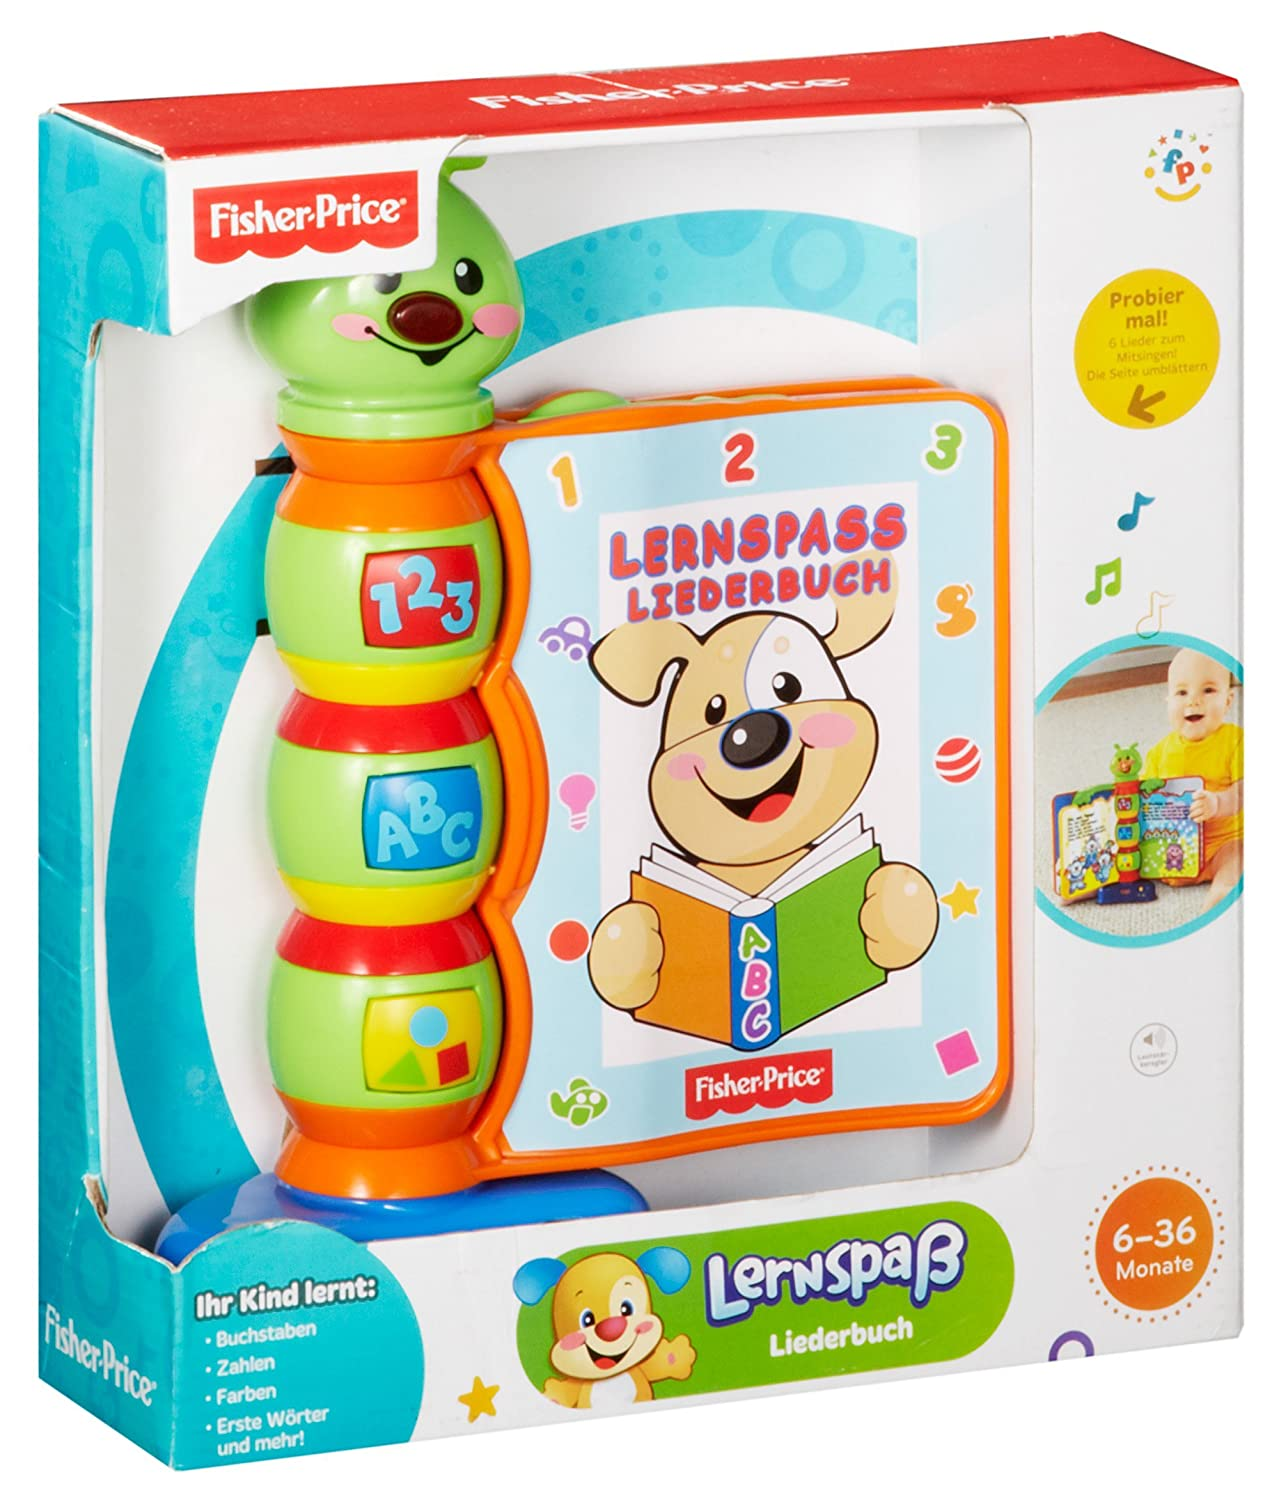 FISHER PRICE Laugh & Learn Song Book: Amazon.co.uk: Toys & Games